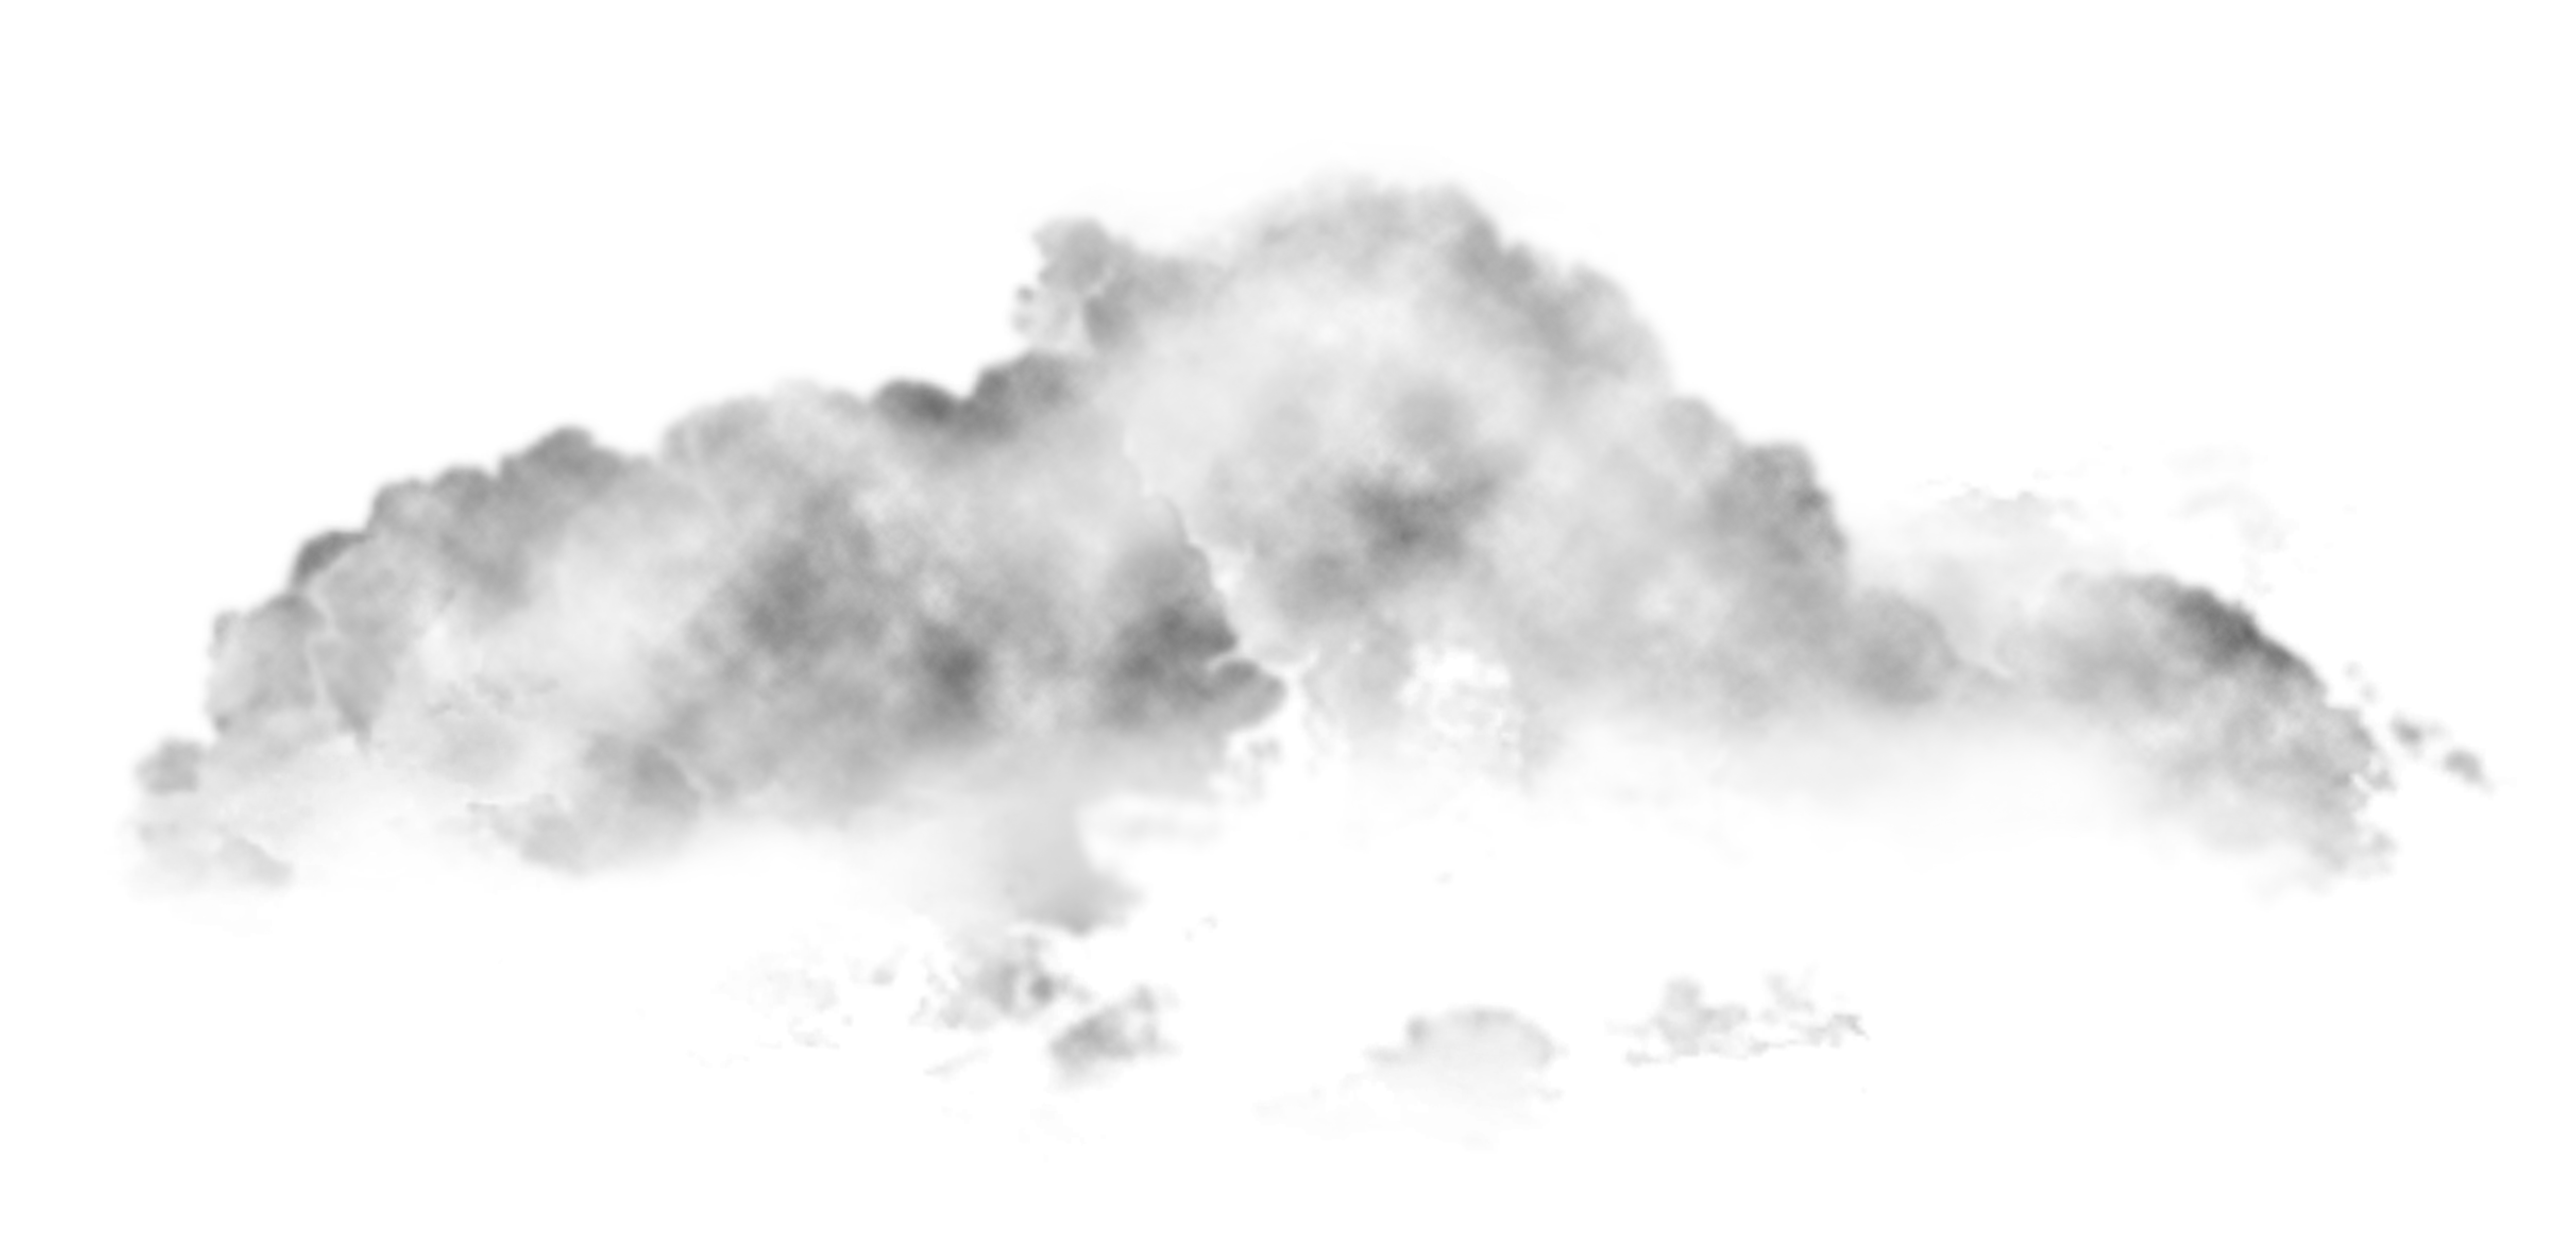 Sun and clouds clipart black and white graphic freeuse download Stratus Cloud PNG Clipart - Best WEB Clipart graphic freeuse download